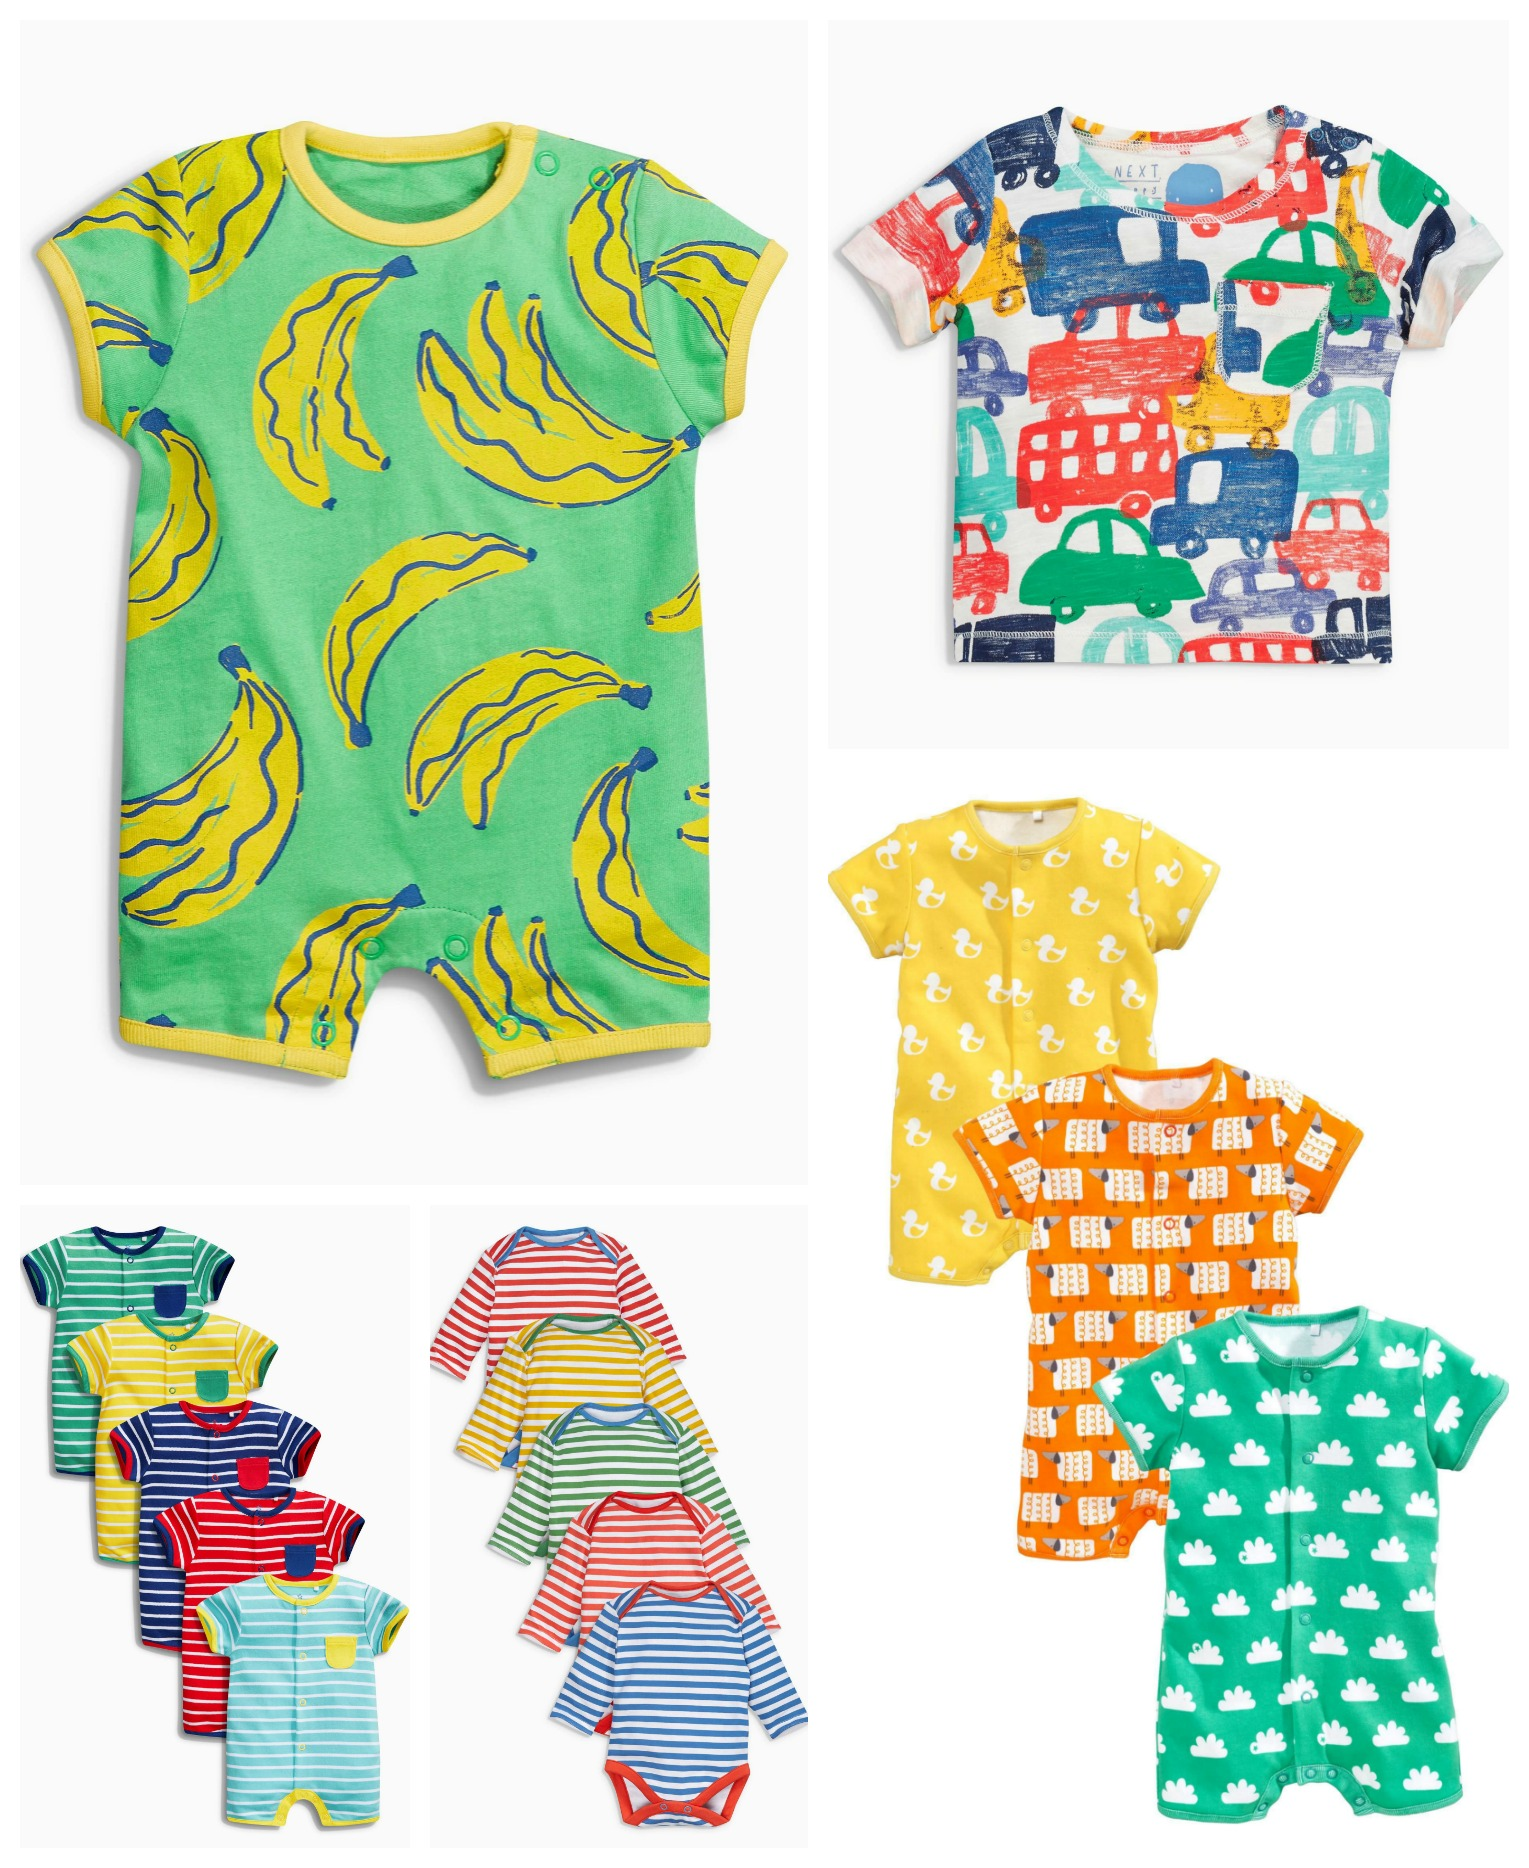 NEXT colourful baby clothes